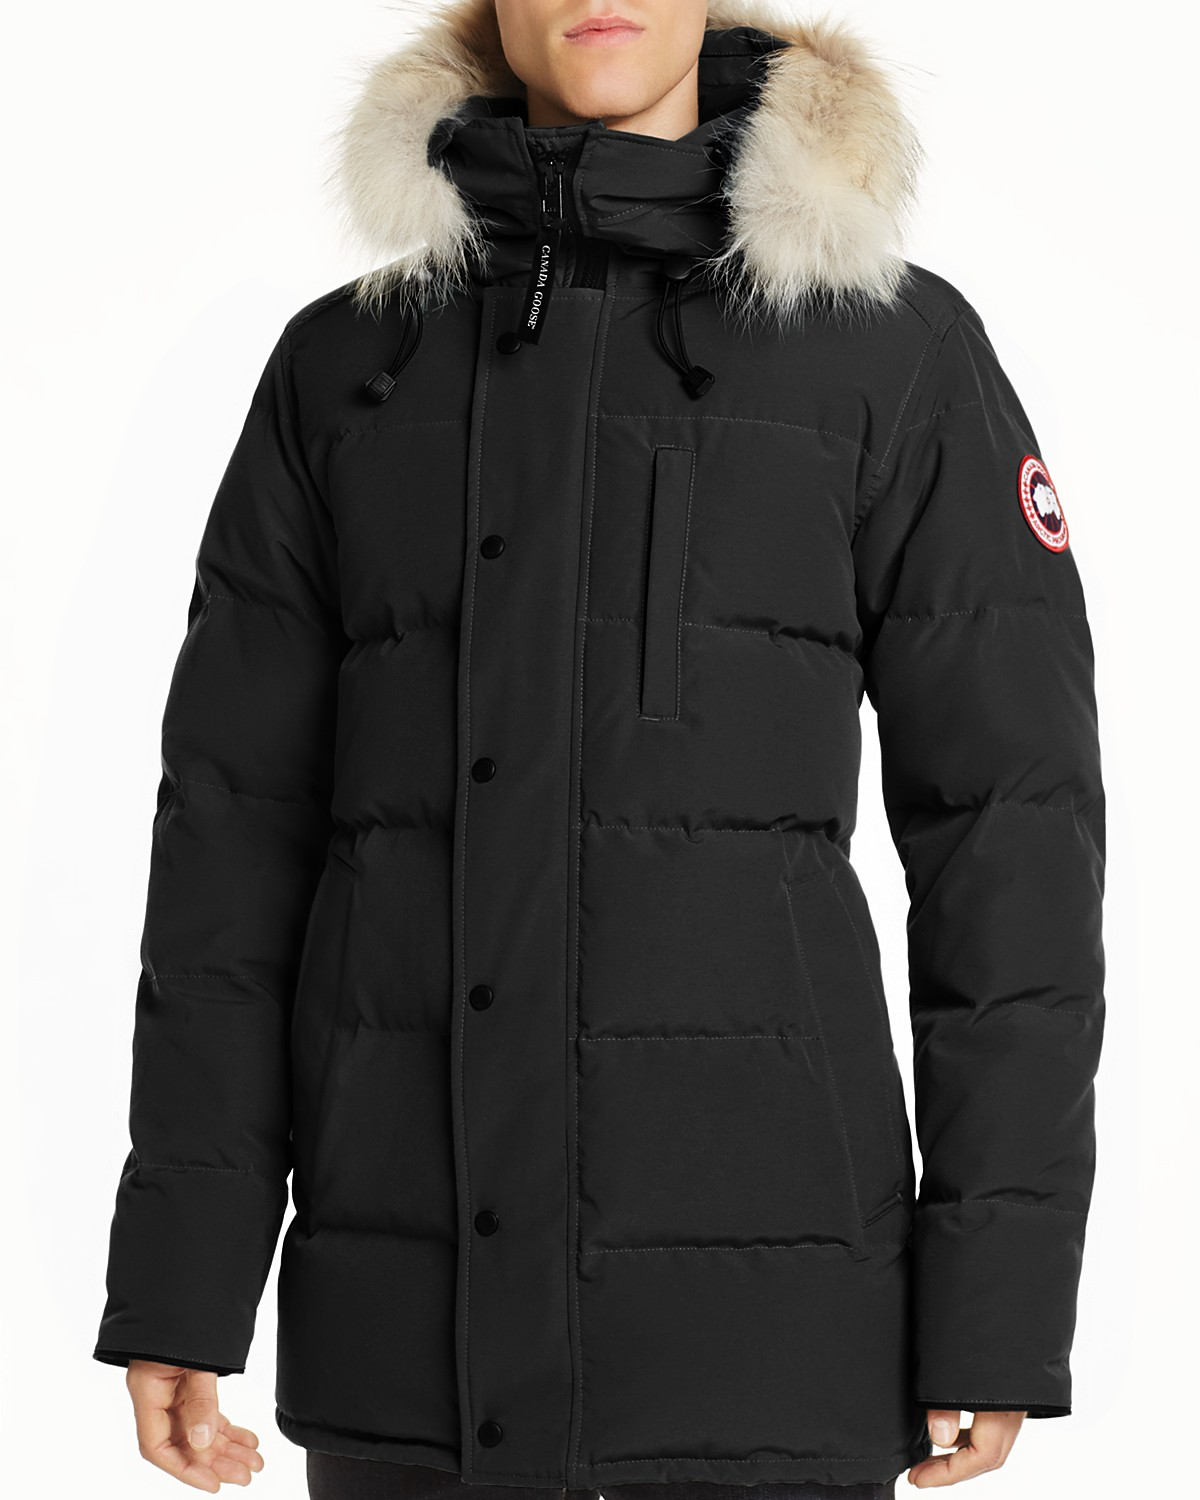 Chateau Shell Hooded Down Parka - BlackCanada Goose Wiki Pas Cher uqwSbFZ